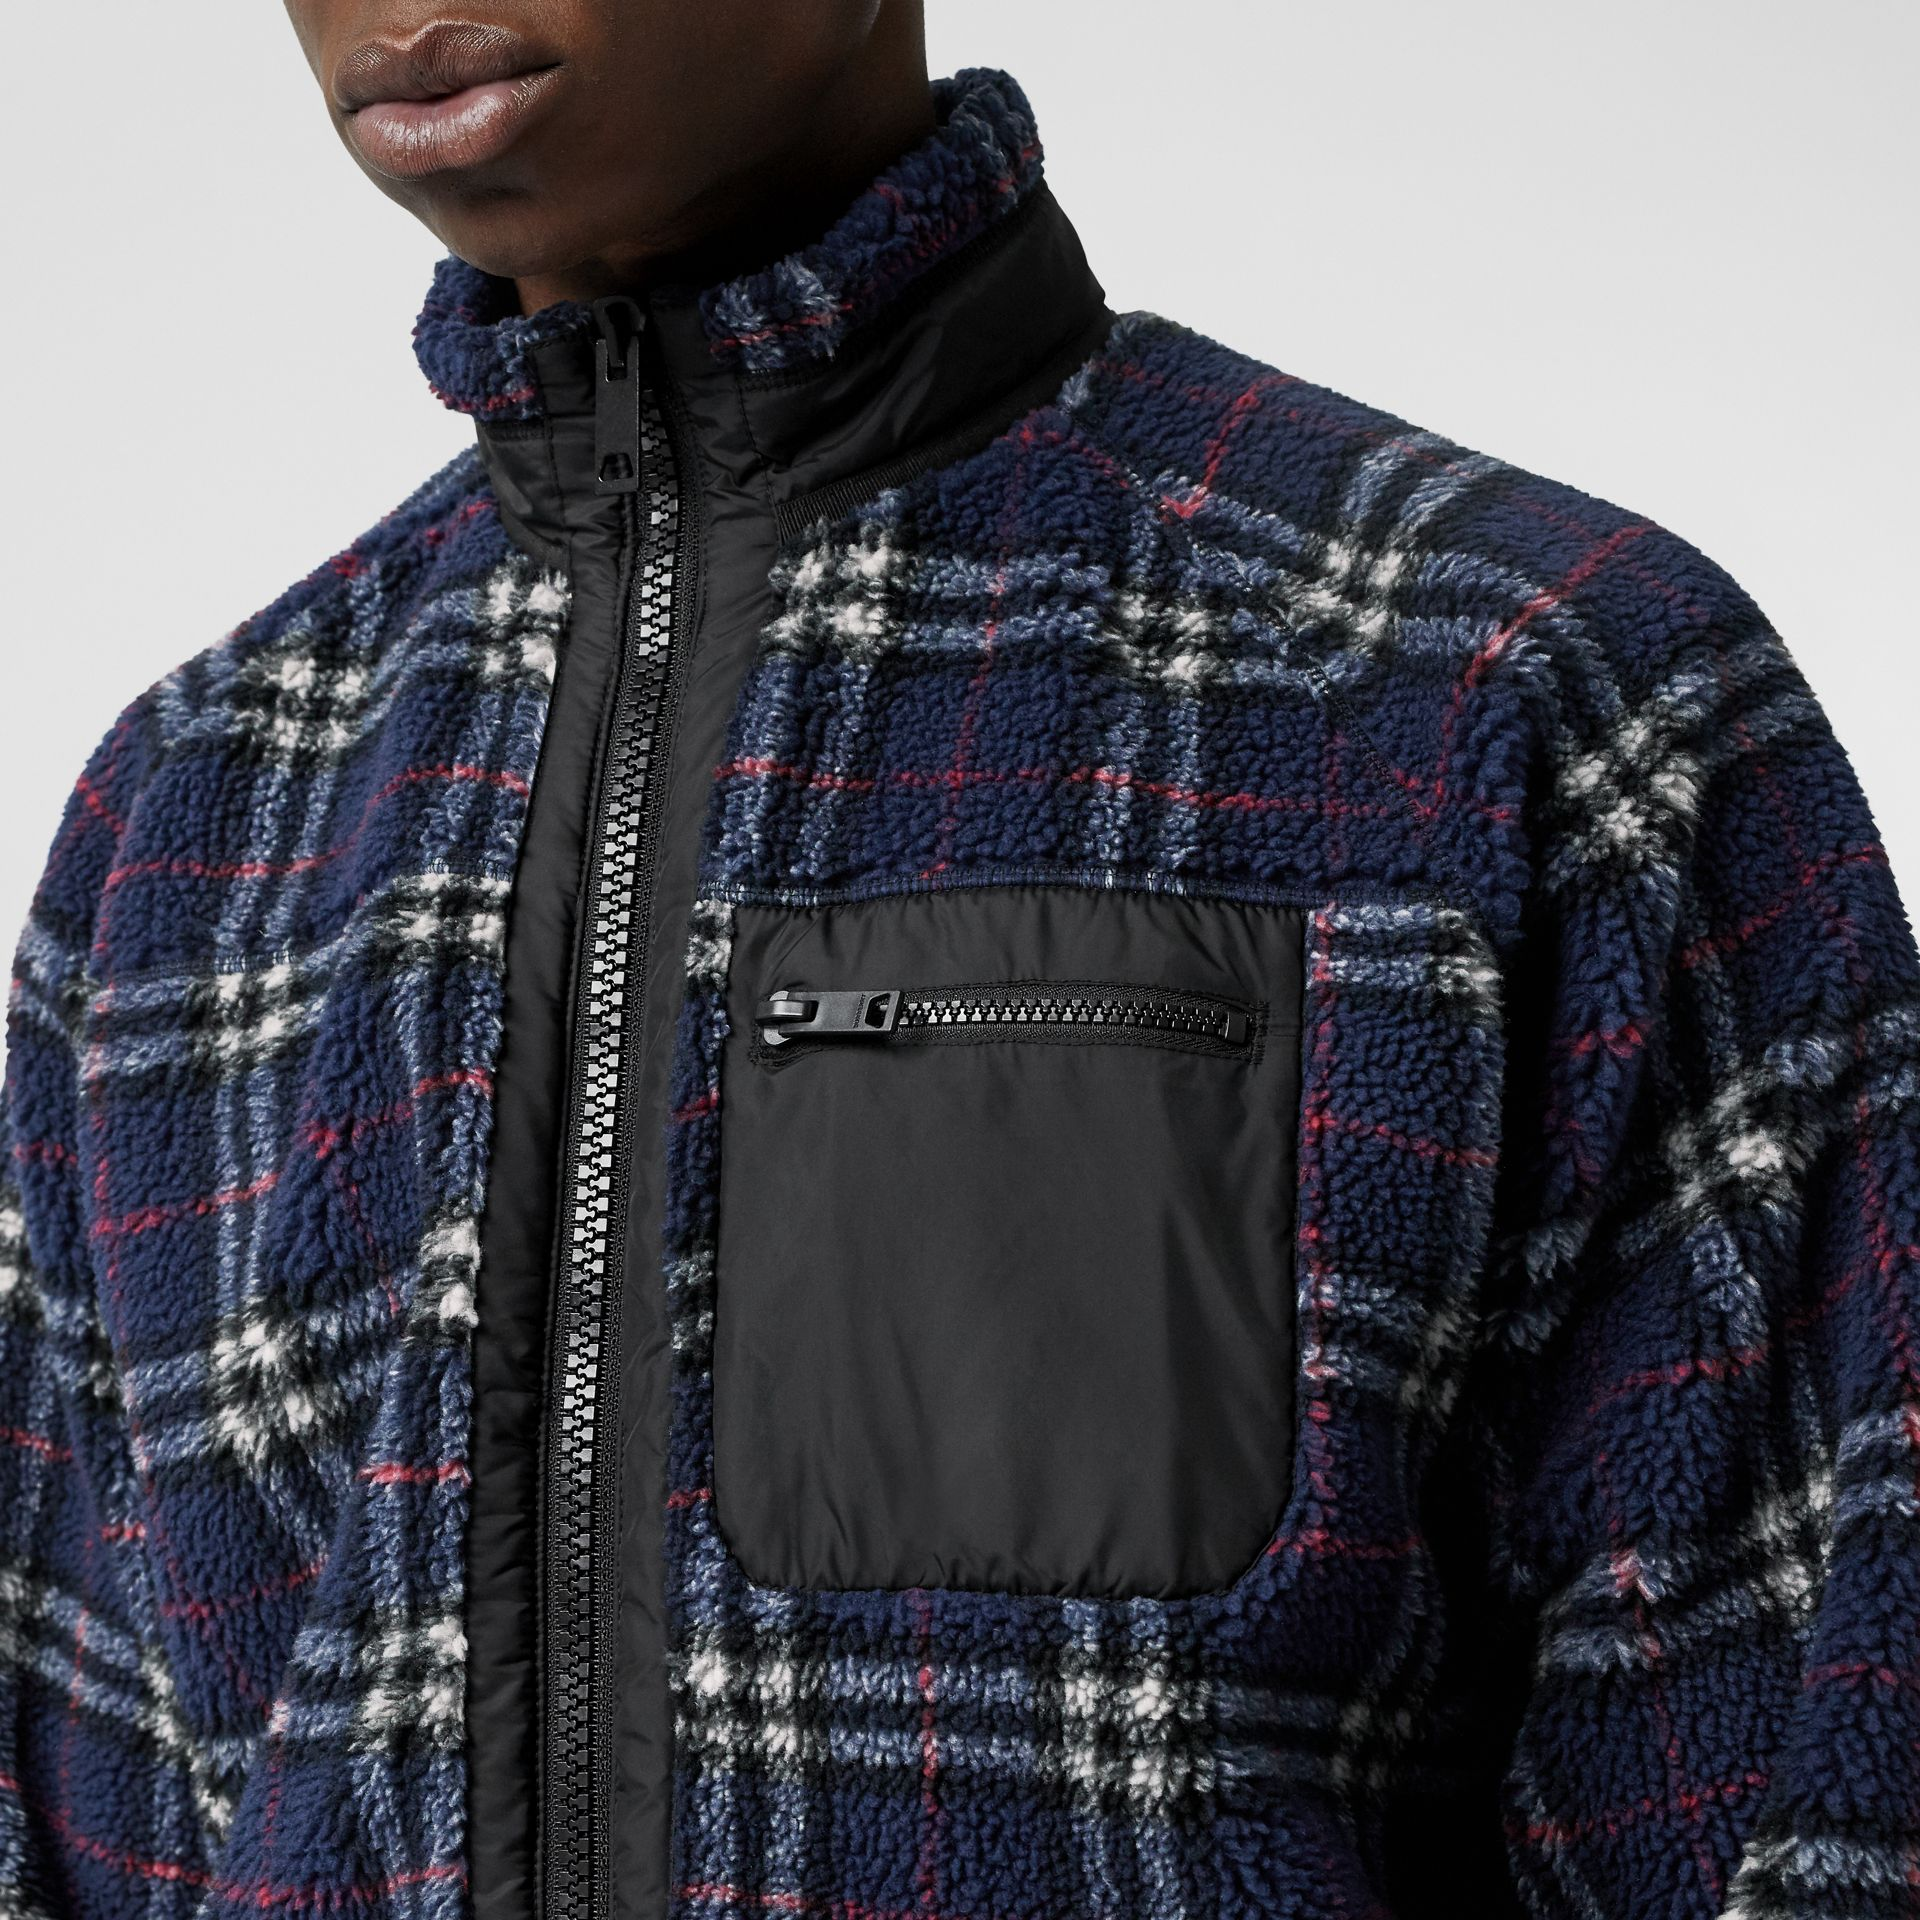 Vintage Check Faux Shearling Jacket in Navy - Men | Burberry United Kingdom - gallery image 1